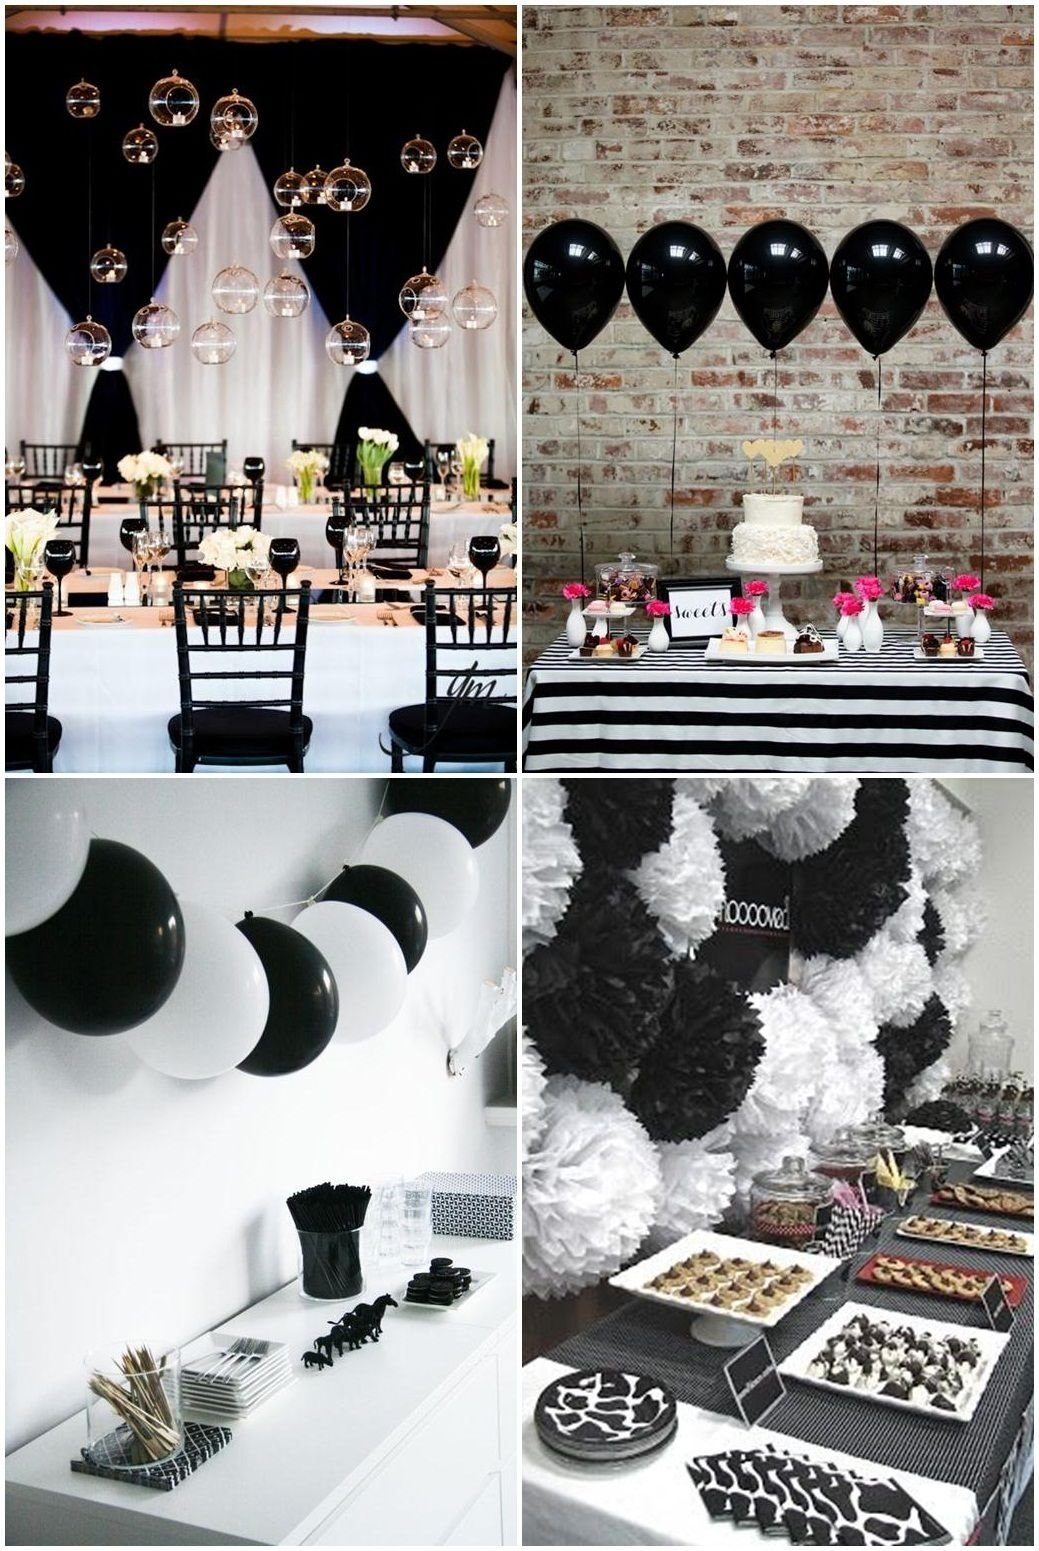 10 Awesome Black And White Centerpiece Ideas simple black and white party ideas pinteres 3 2021